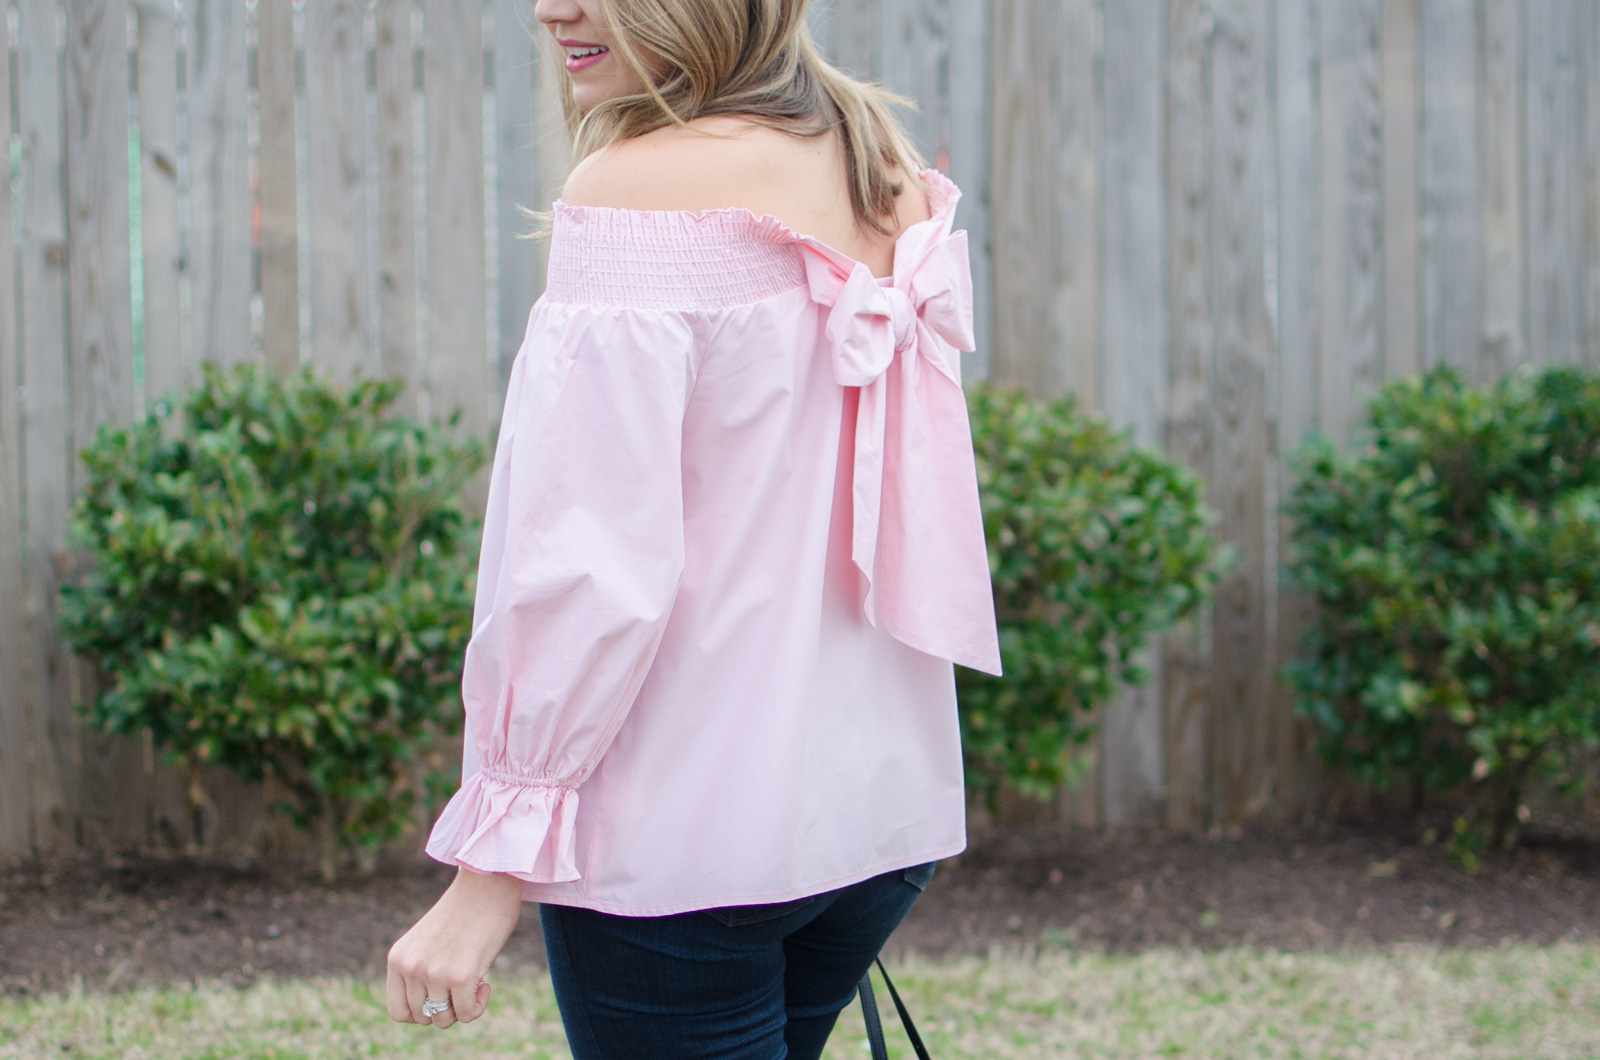 b73def59b6156 off shoulder bow top - cutest spring outfit. click through for more cute  spring outfits